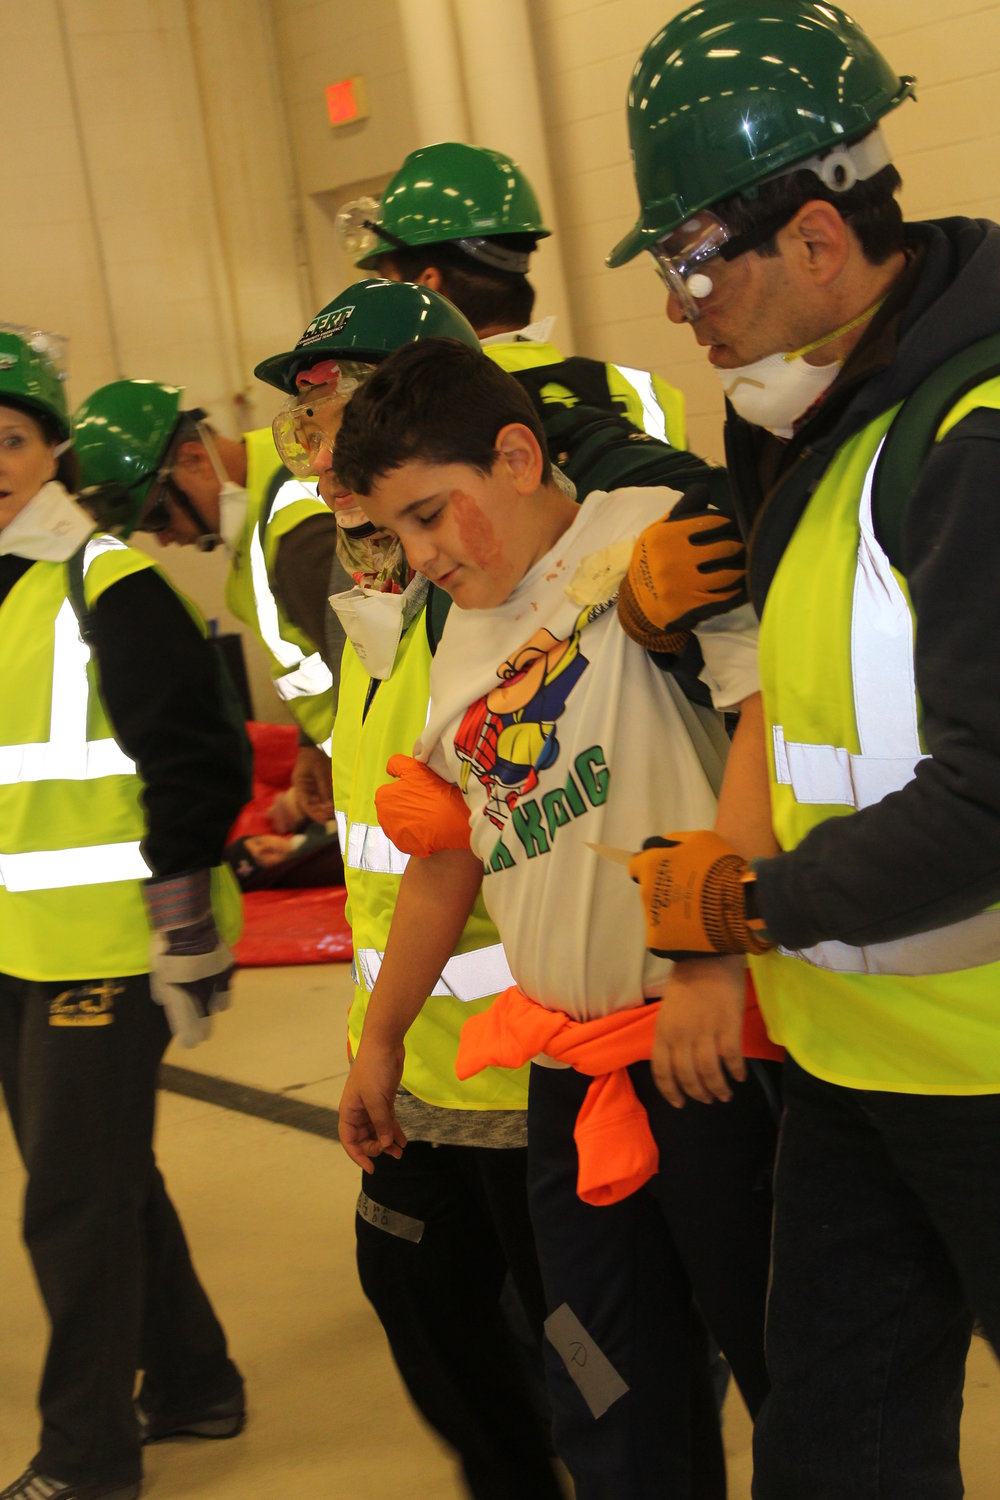 """Members of Boy Scouts from Troop 302 participated in CERT training as the """"victims""""."""